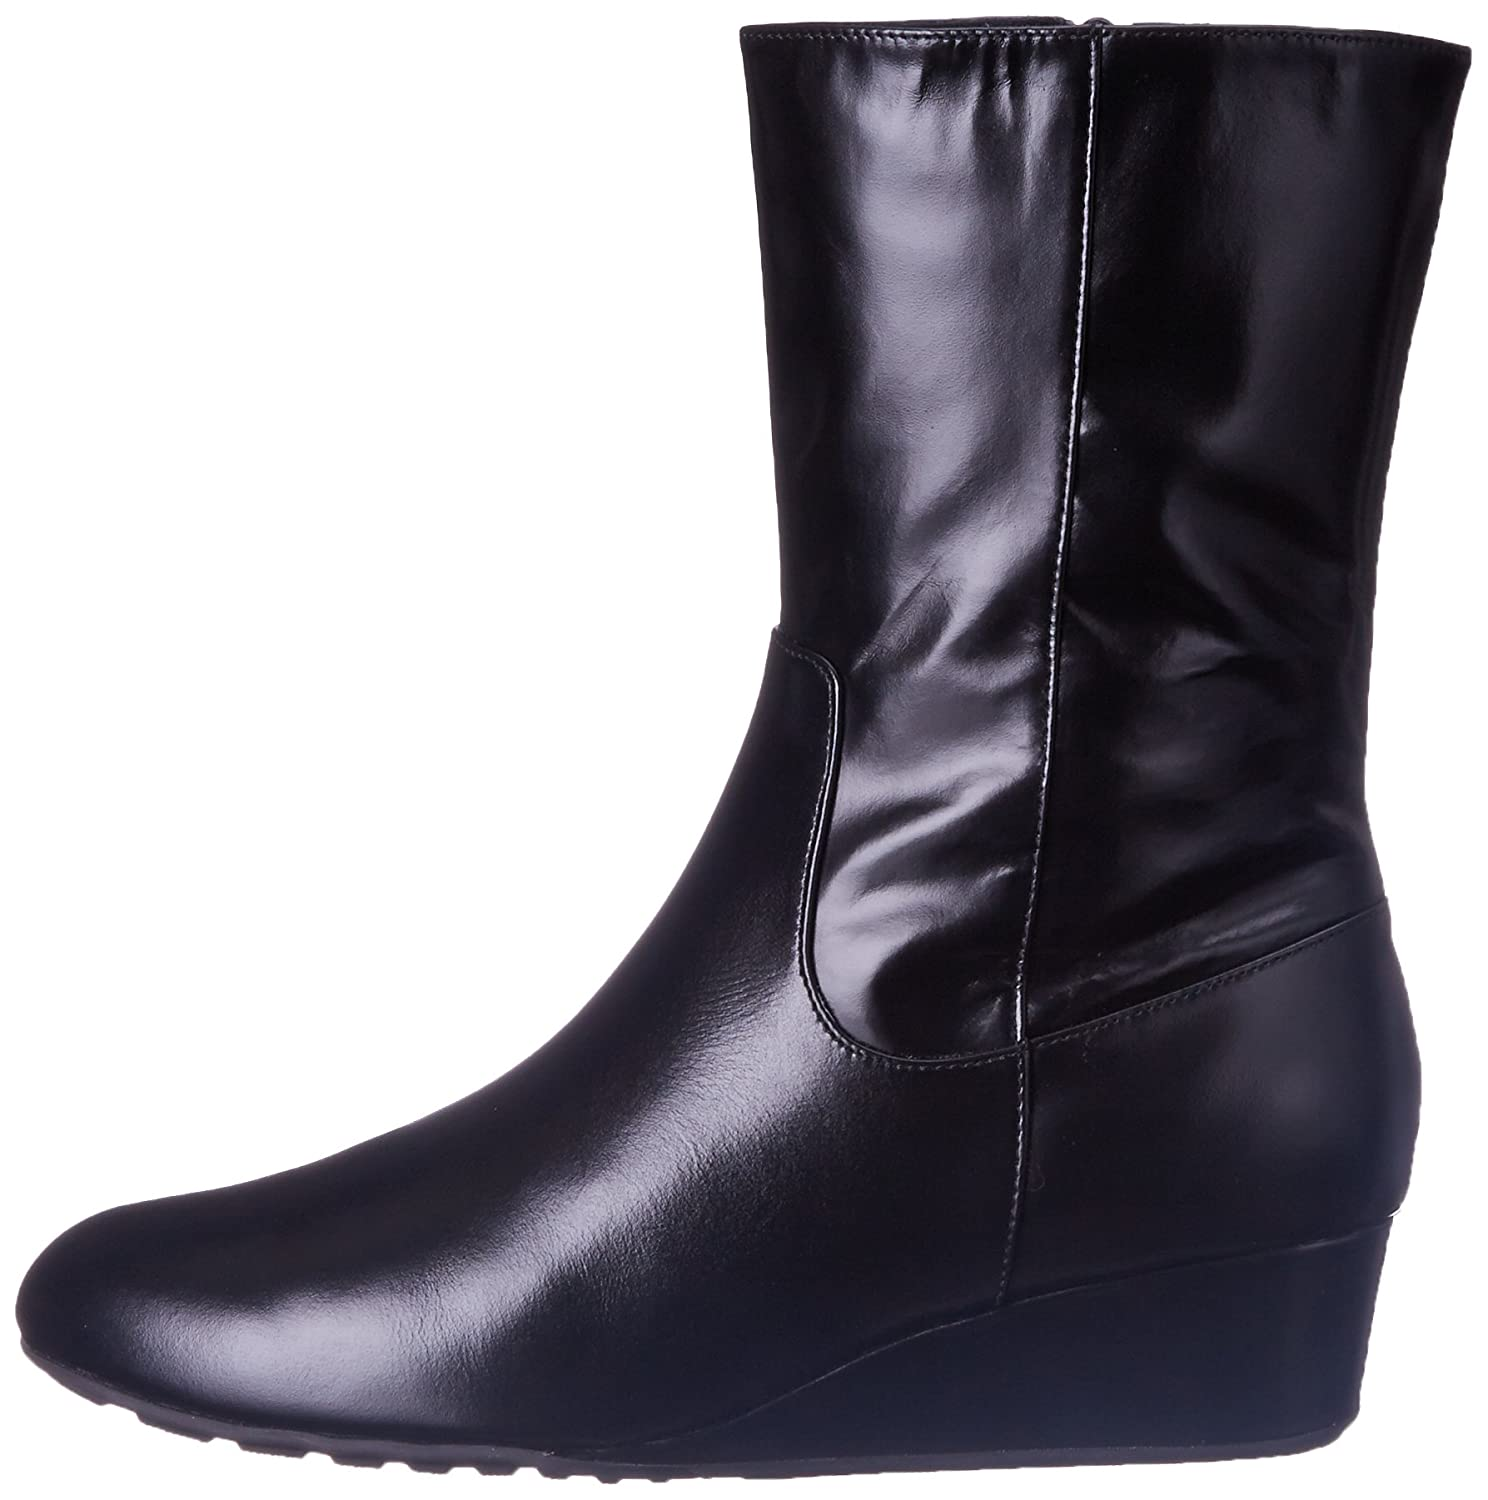 Cole Haan Women's Tali Grand Shbt 40WP Boot B00WUPIWO4 10 B(M) US|Black Wp